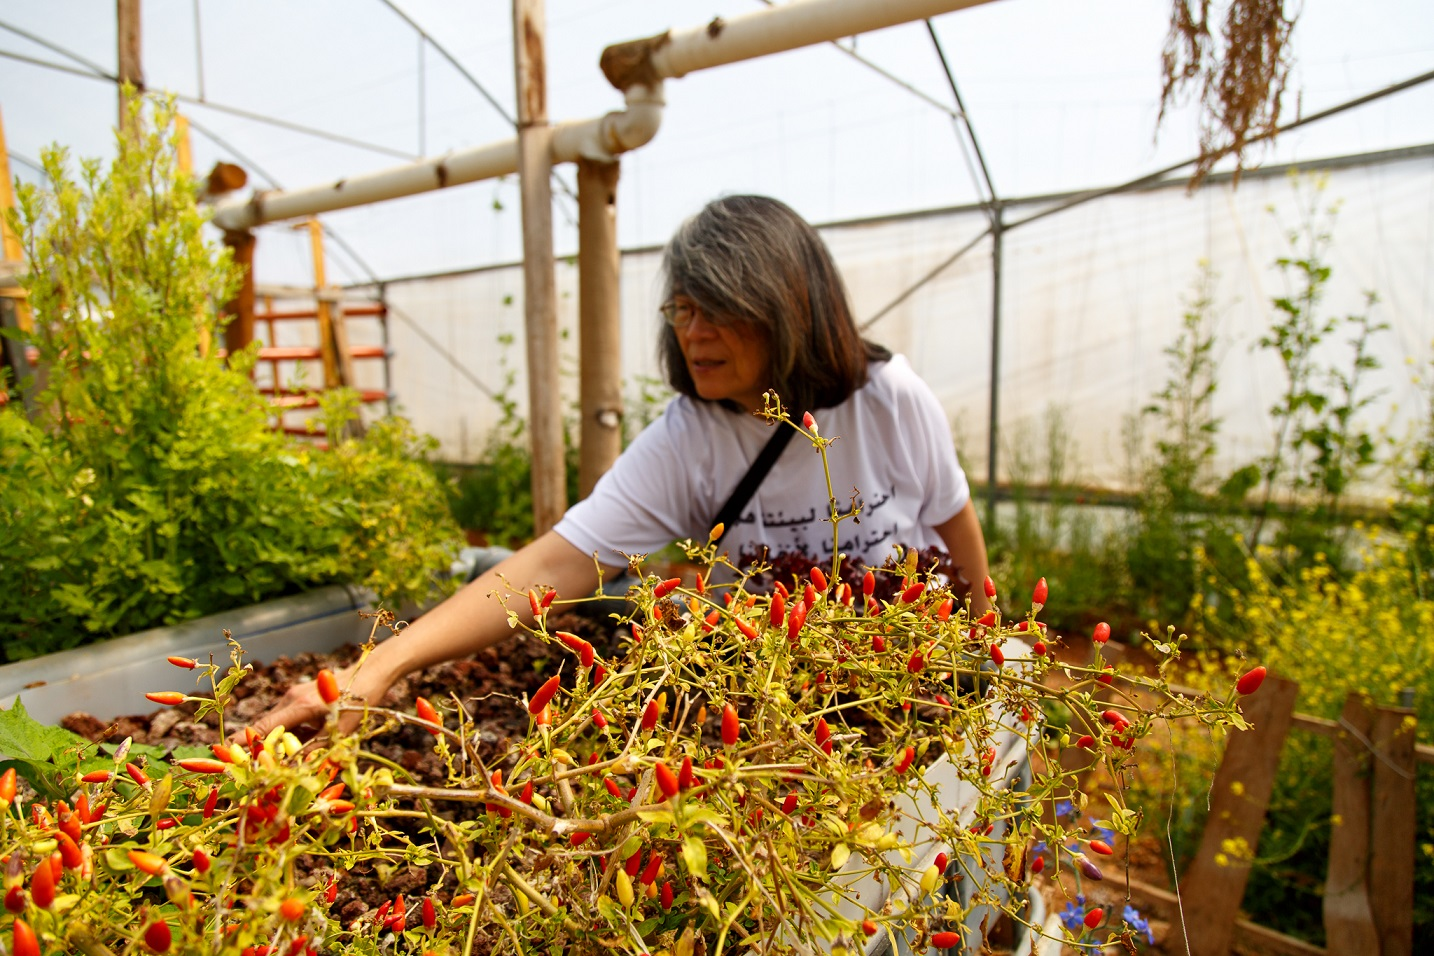 Co-founder of the Natural History Museum, Jesse Qumsiyeh check on the chillies and other plants grown inside their greenhouse